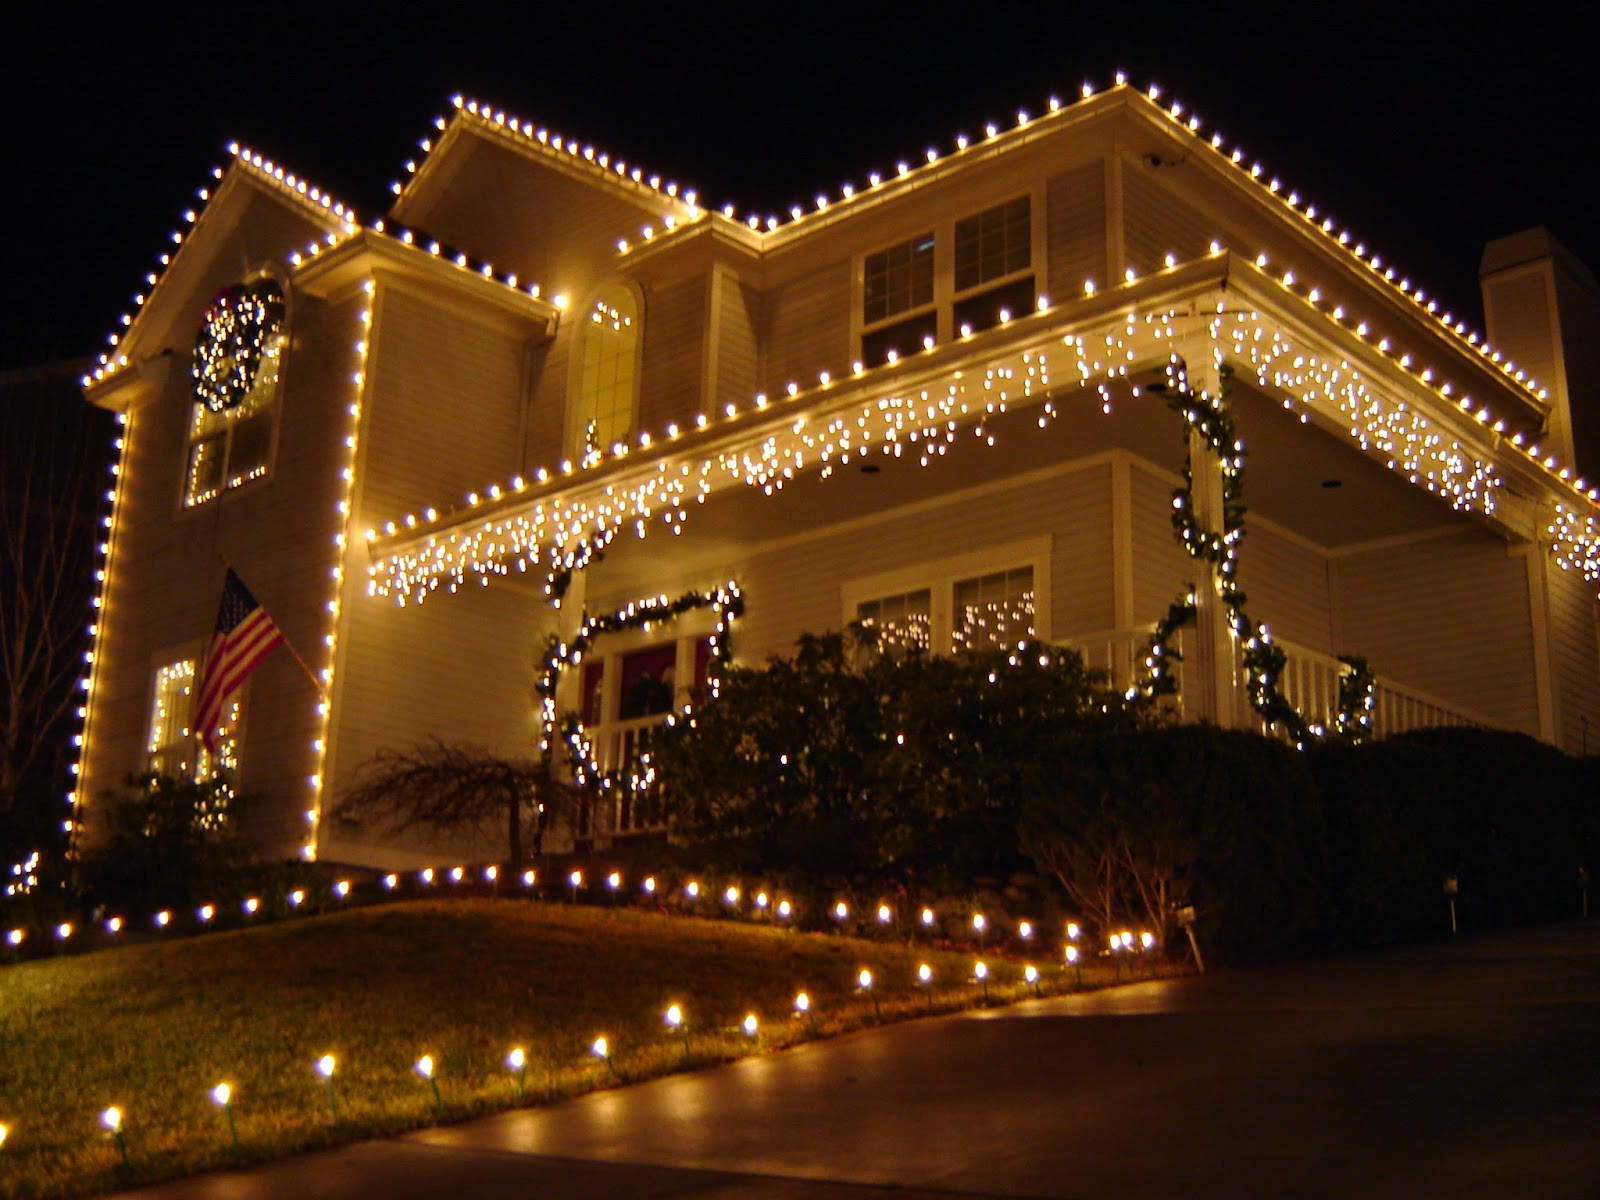 7 tips for installing christmas lights on gutters - Christmas Lights And Decorations